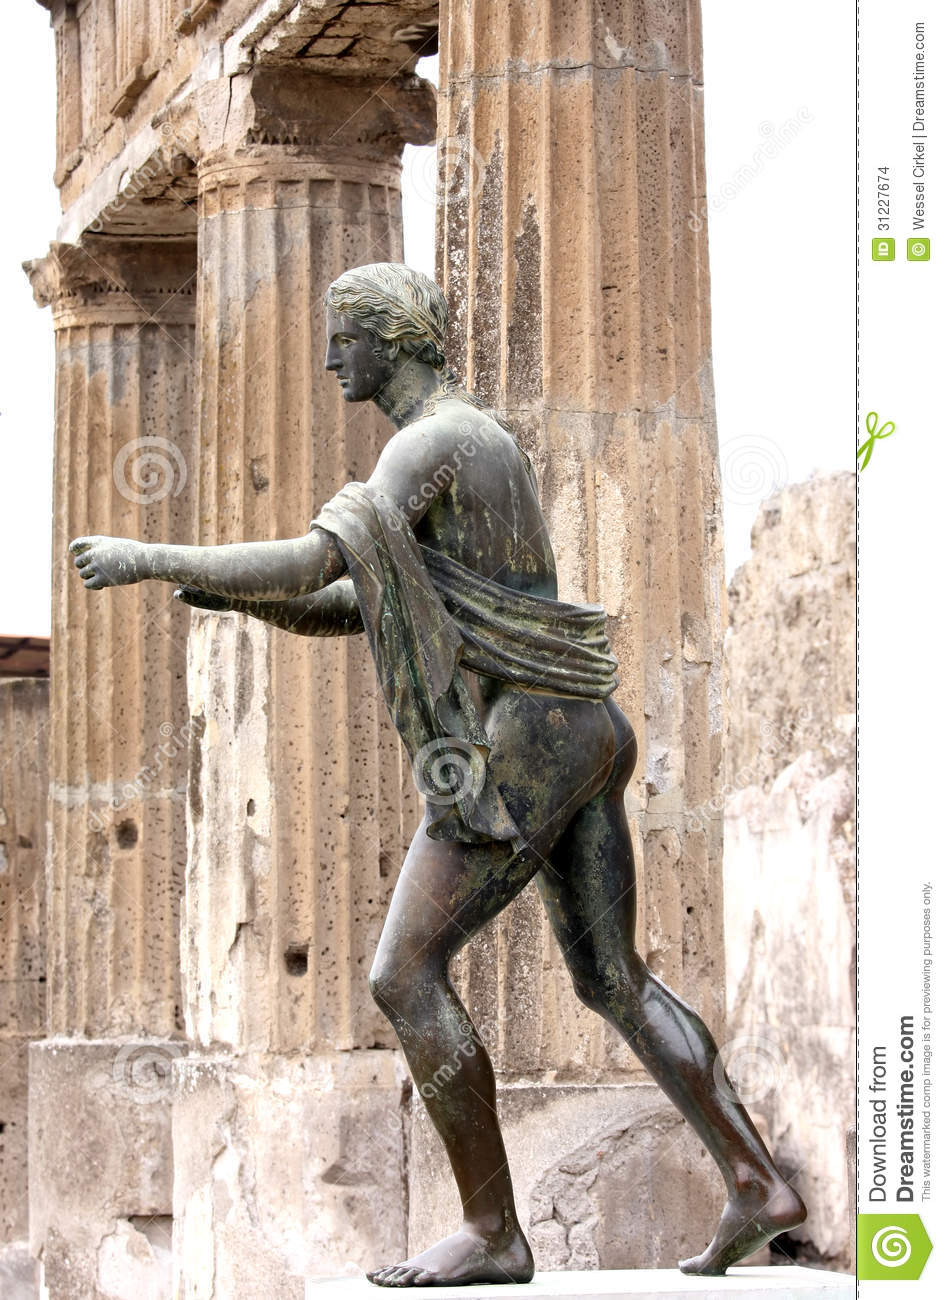 Statue Of Apollo In The Ruins Of Pompei, Italy Stock ...